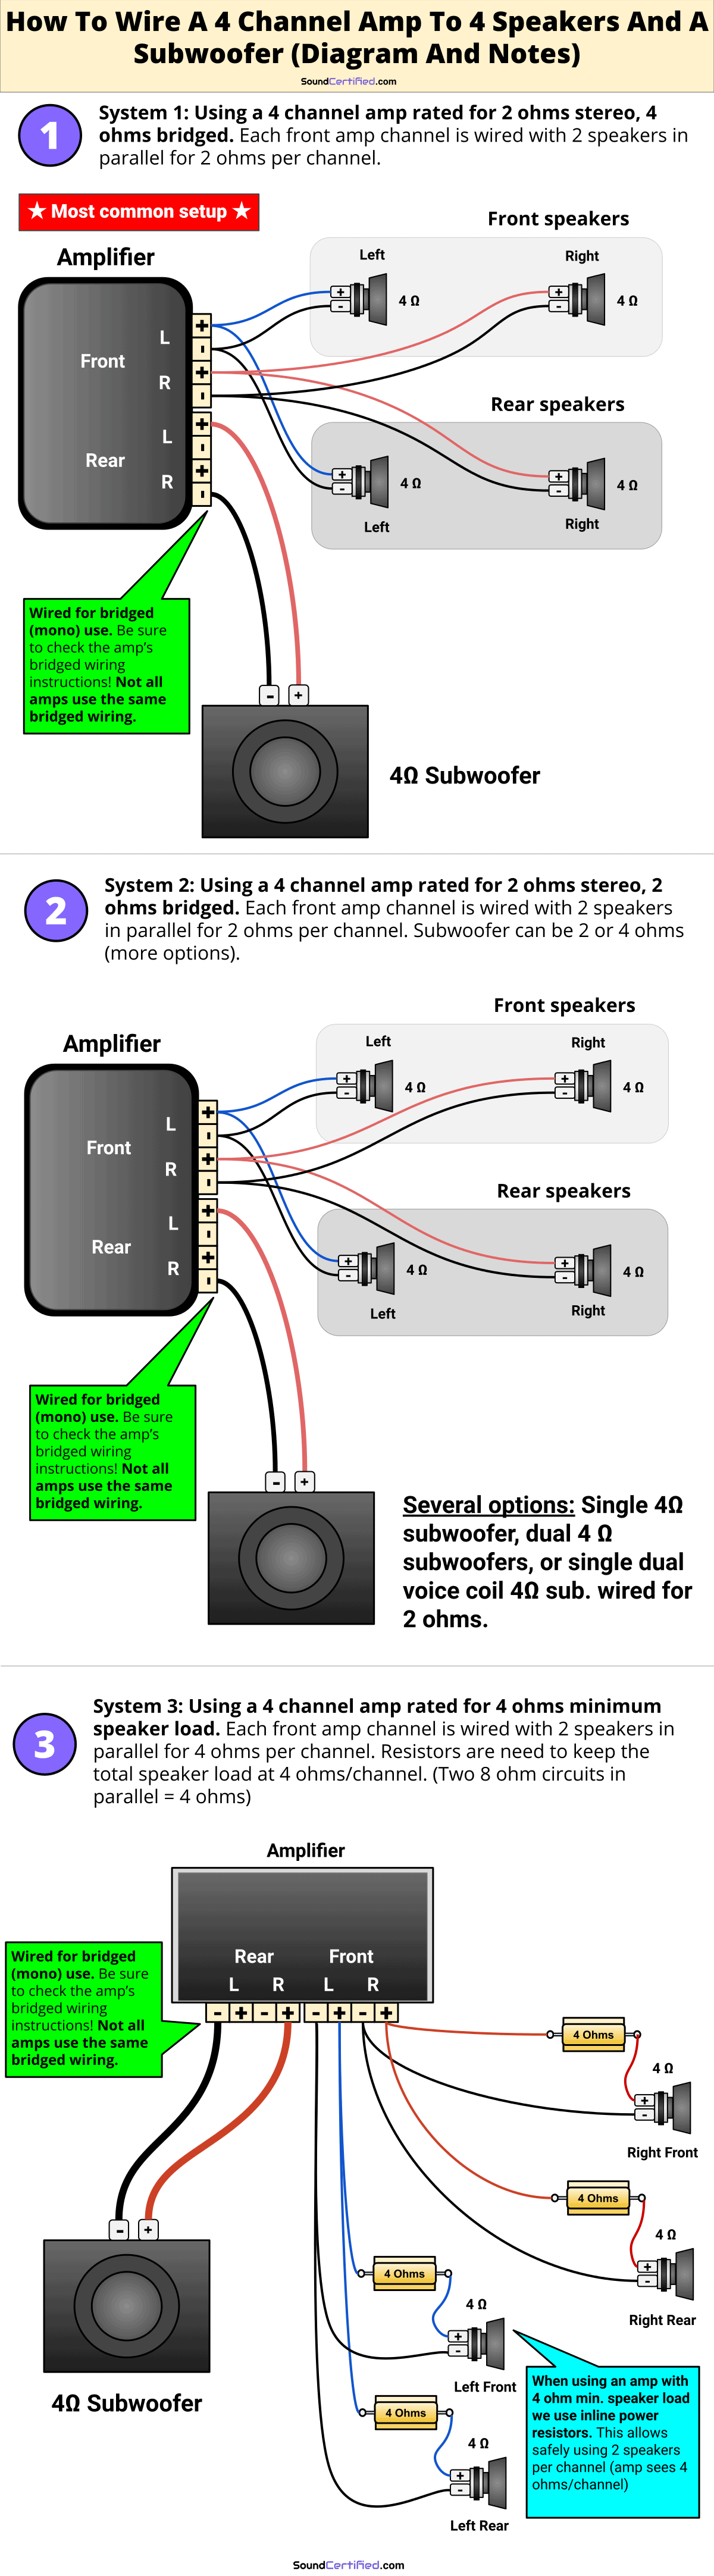 Detailed diagram for how to wire a 4 channel amp to 4 speakers and a subwoofer